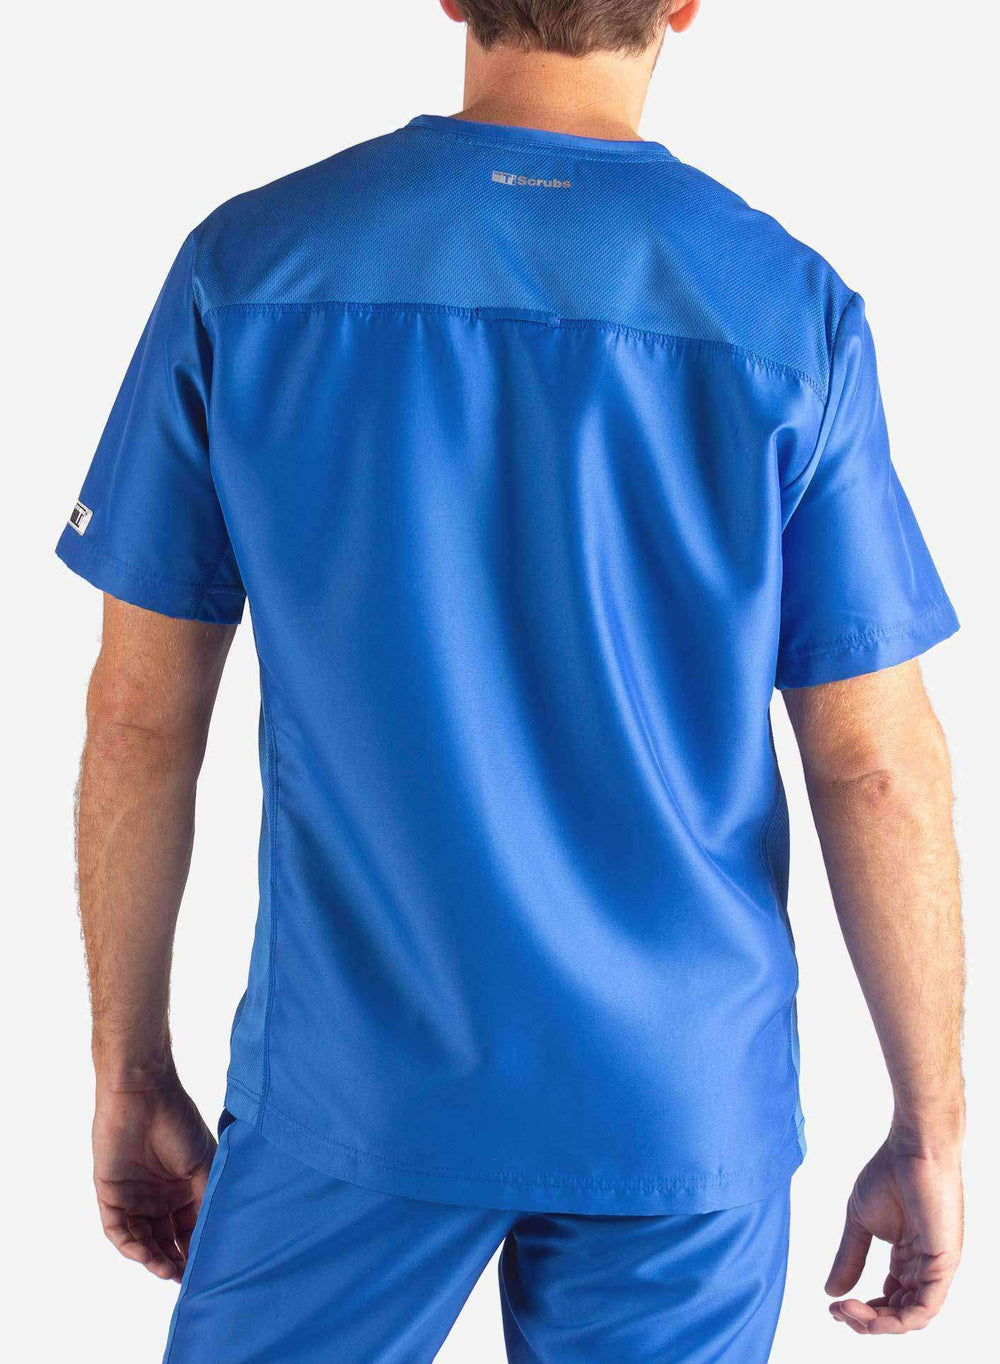 Men's Slim Fit Scrub Top in Royal Blue Back